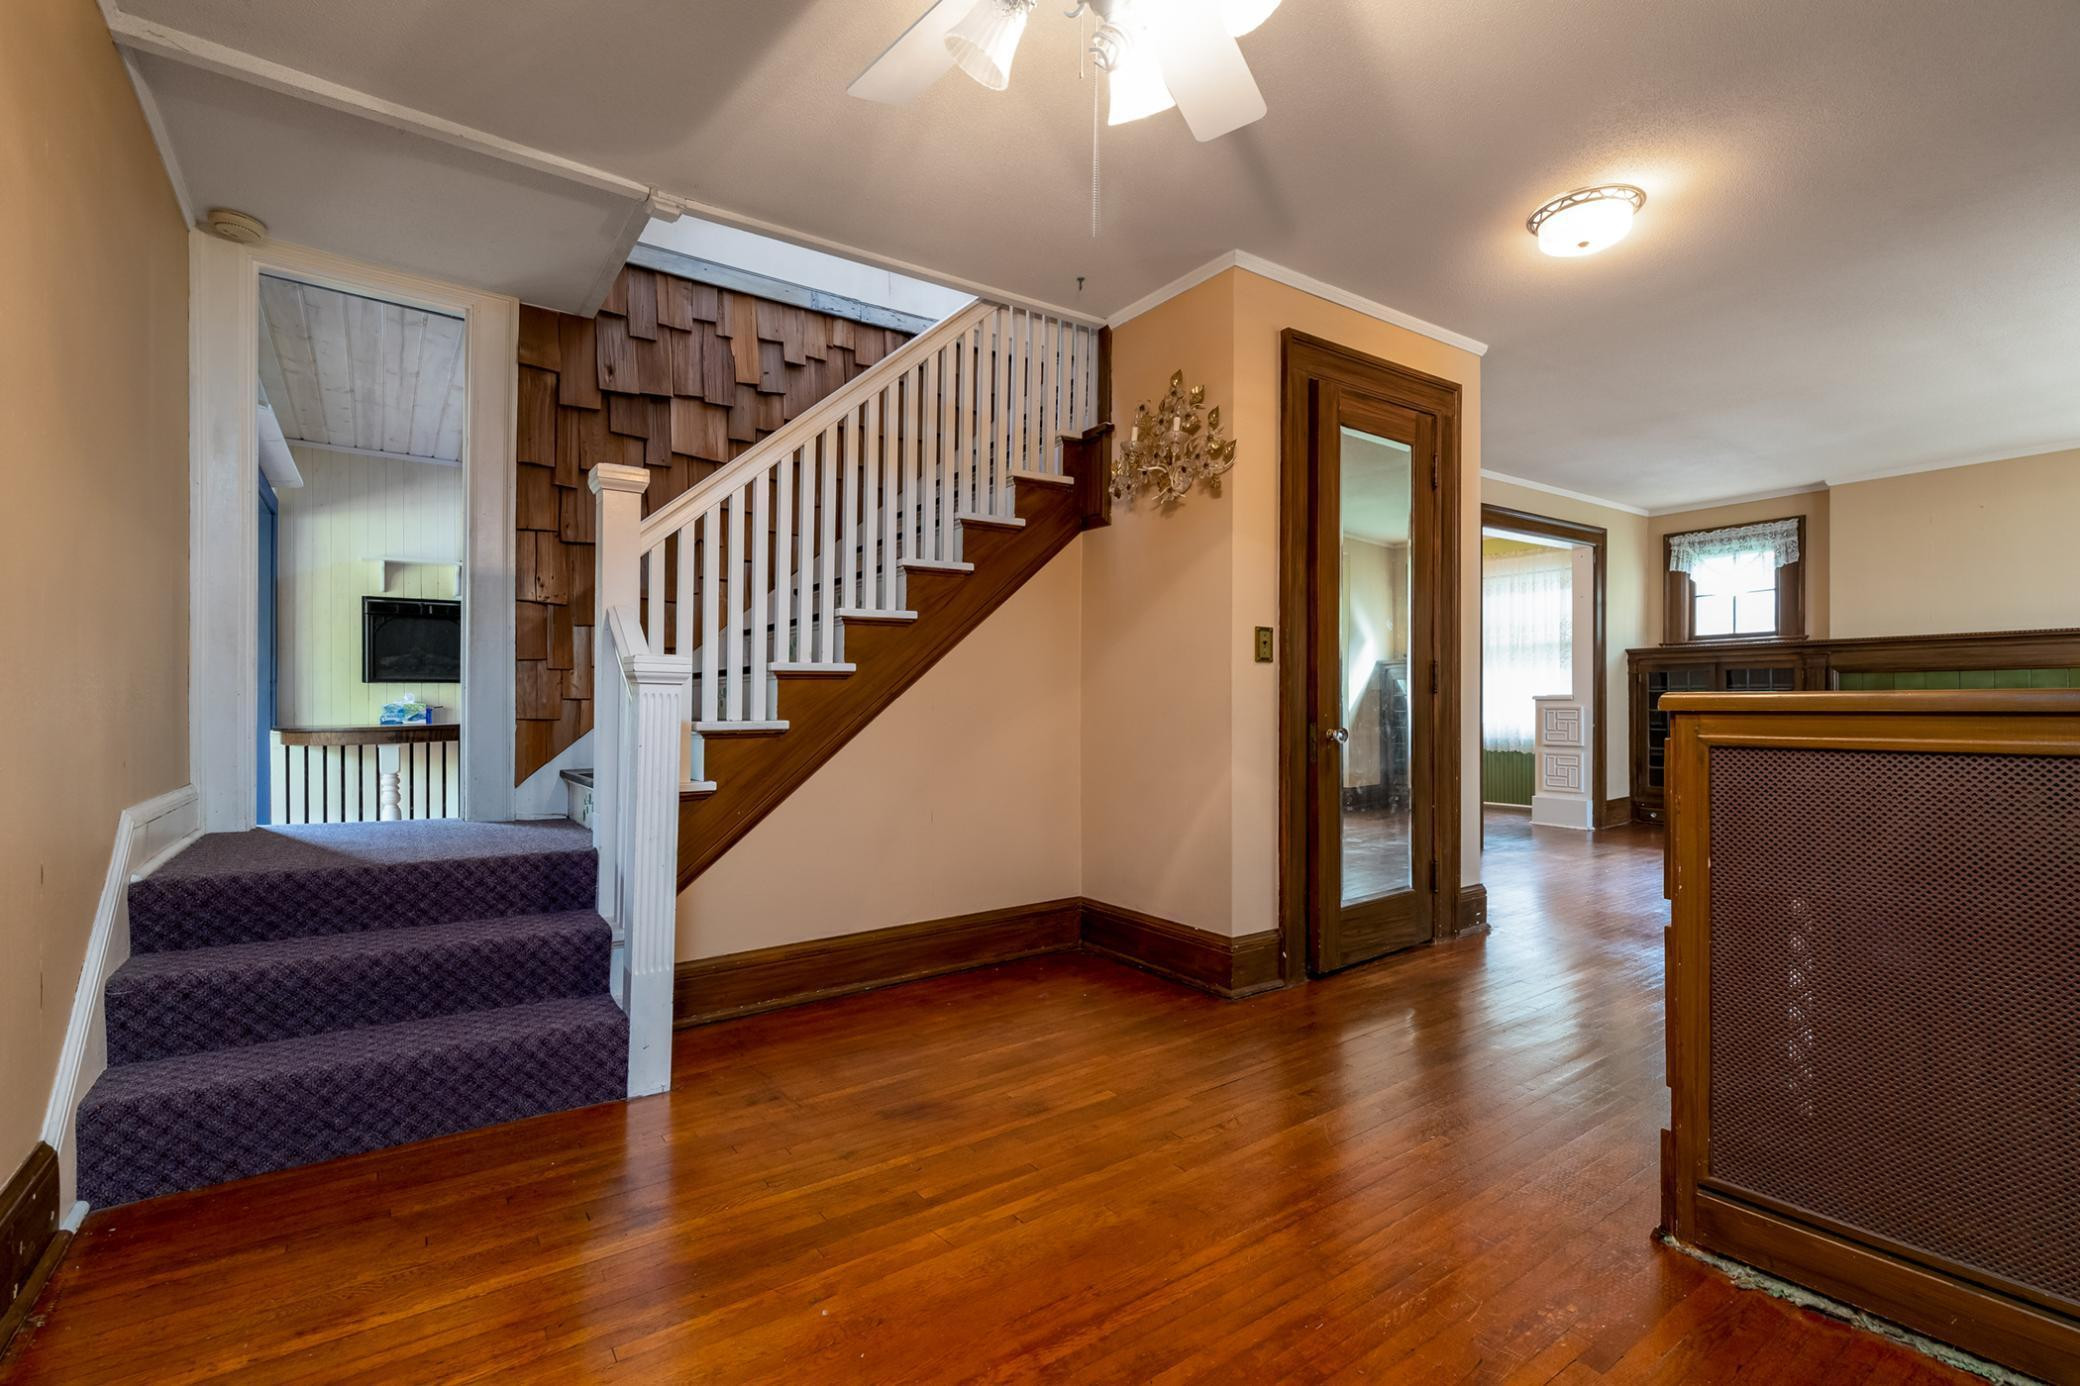 Living Room/Open Stair Case to Upper Level